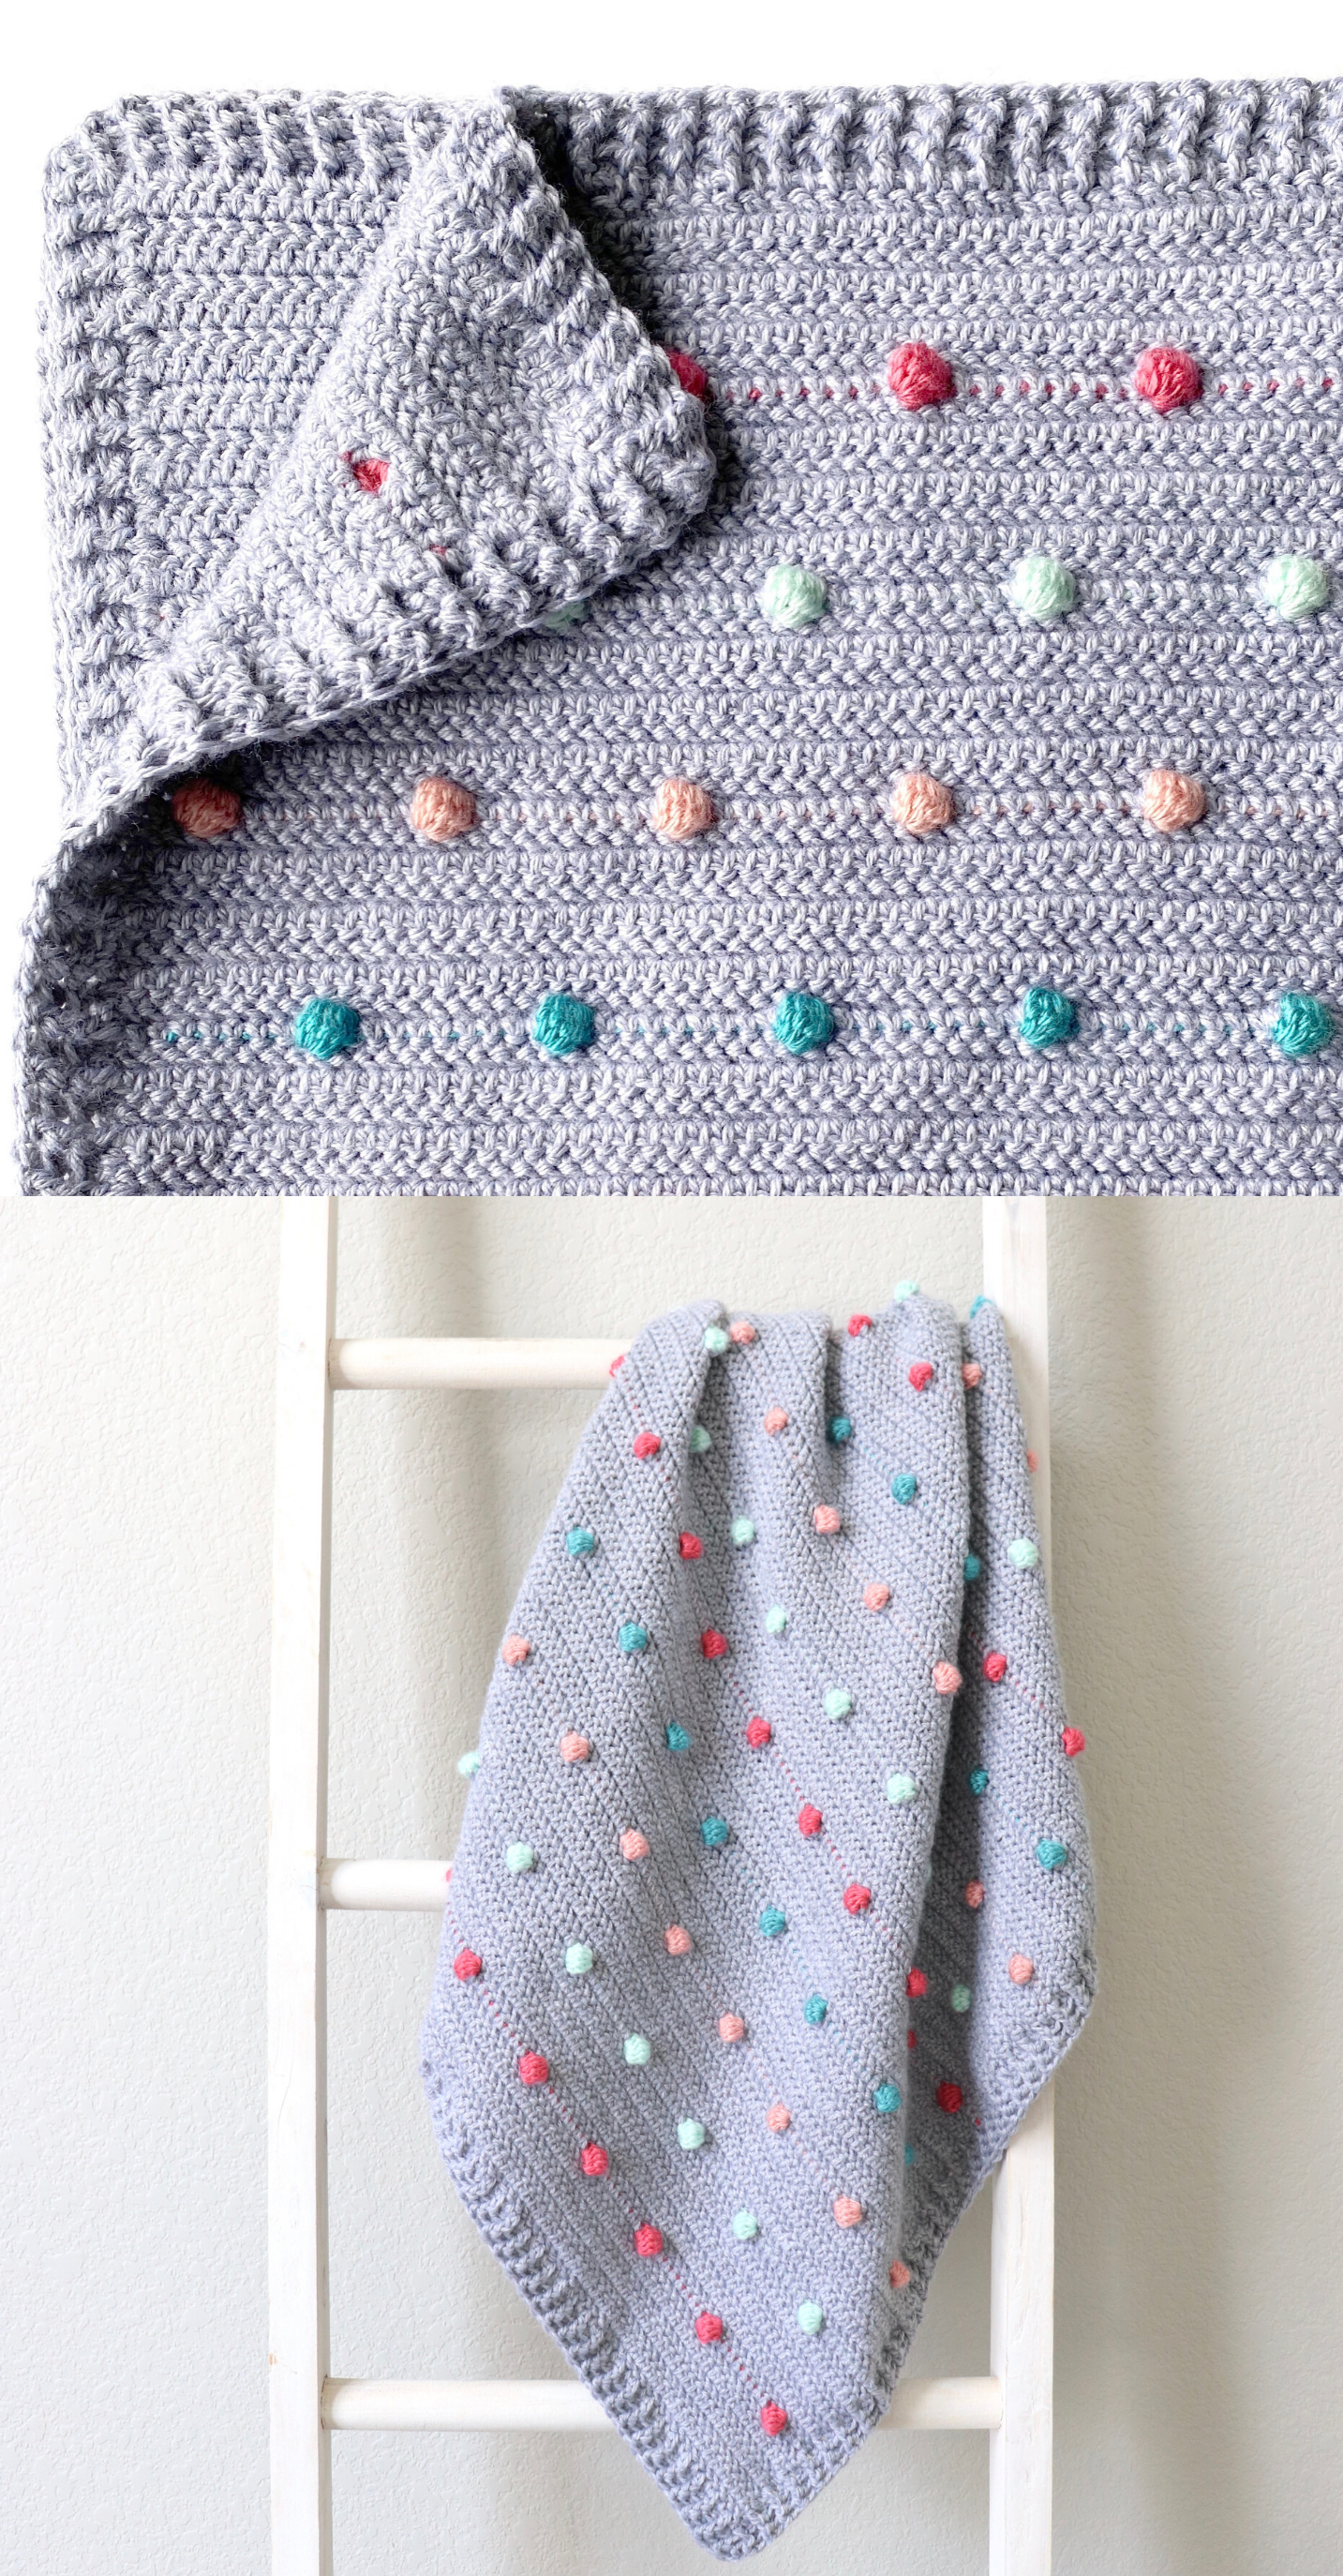 Free Pattern - Crochet Colorful Polka Dots Blanket